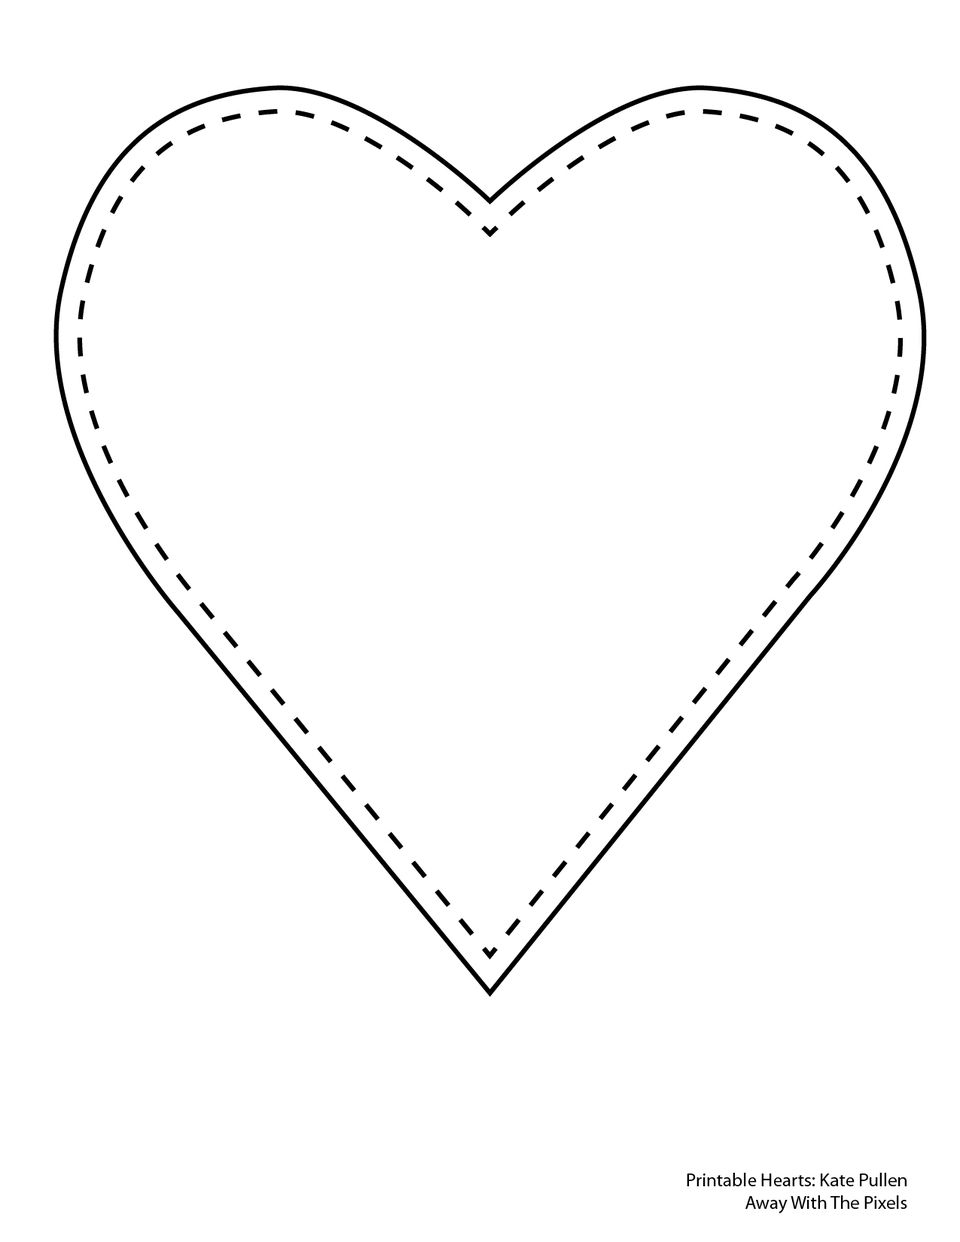 6 free printable heart templates for Heart template for sewing